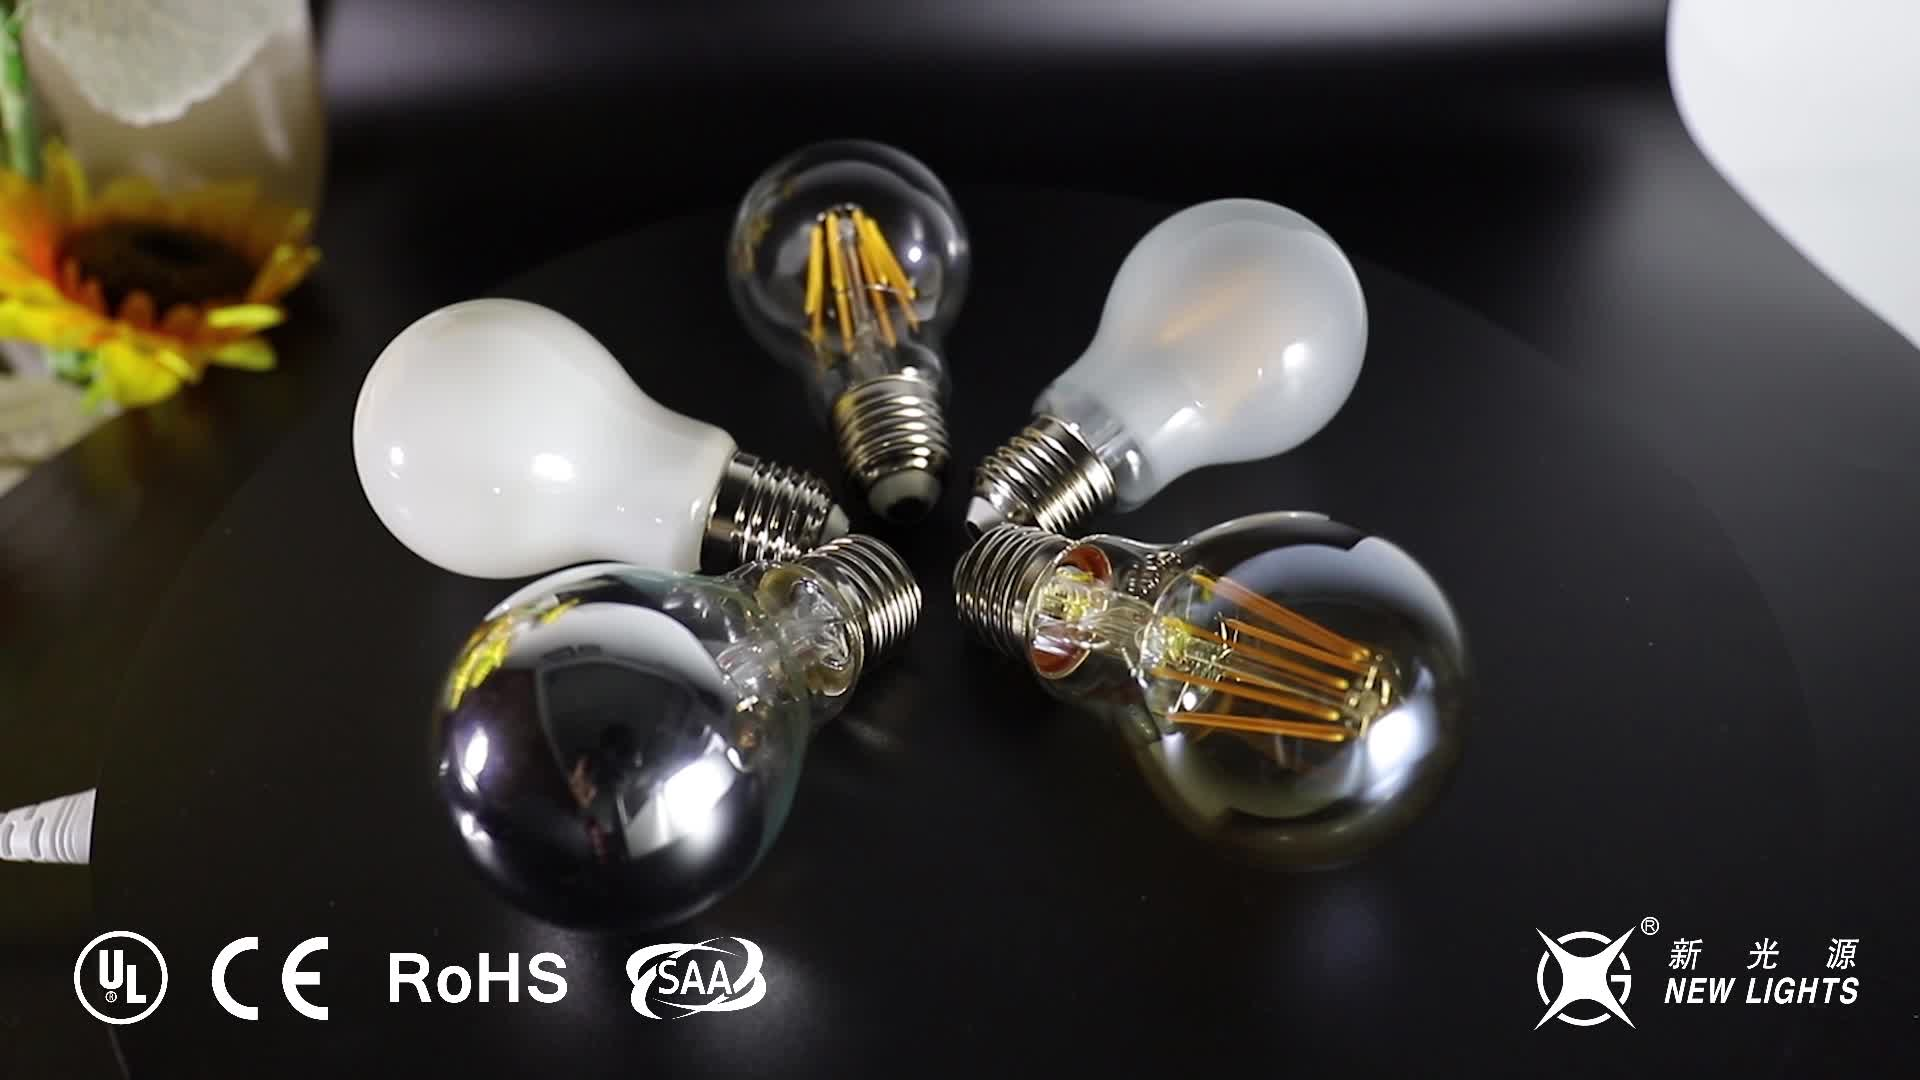 OEM Vintage Decoration 110V 220V Lamp 2W 4W 6W 8W C35 G45 T45 A60 G80 G95 G125 ST64 Dimmable led filament bulb